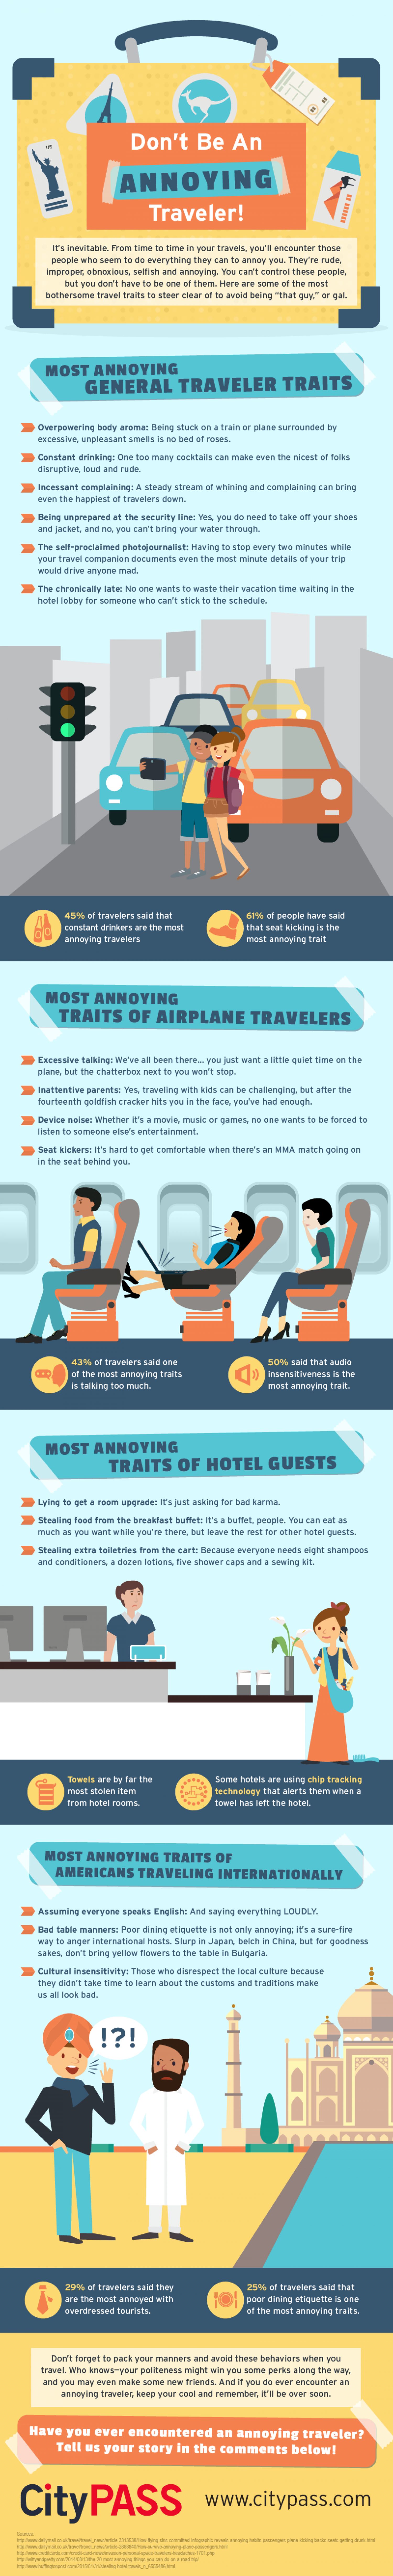 Don't Be An Annoying Traveler Infographic